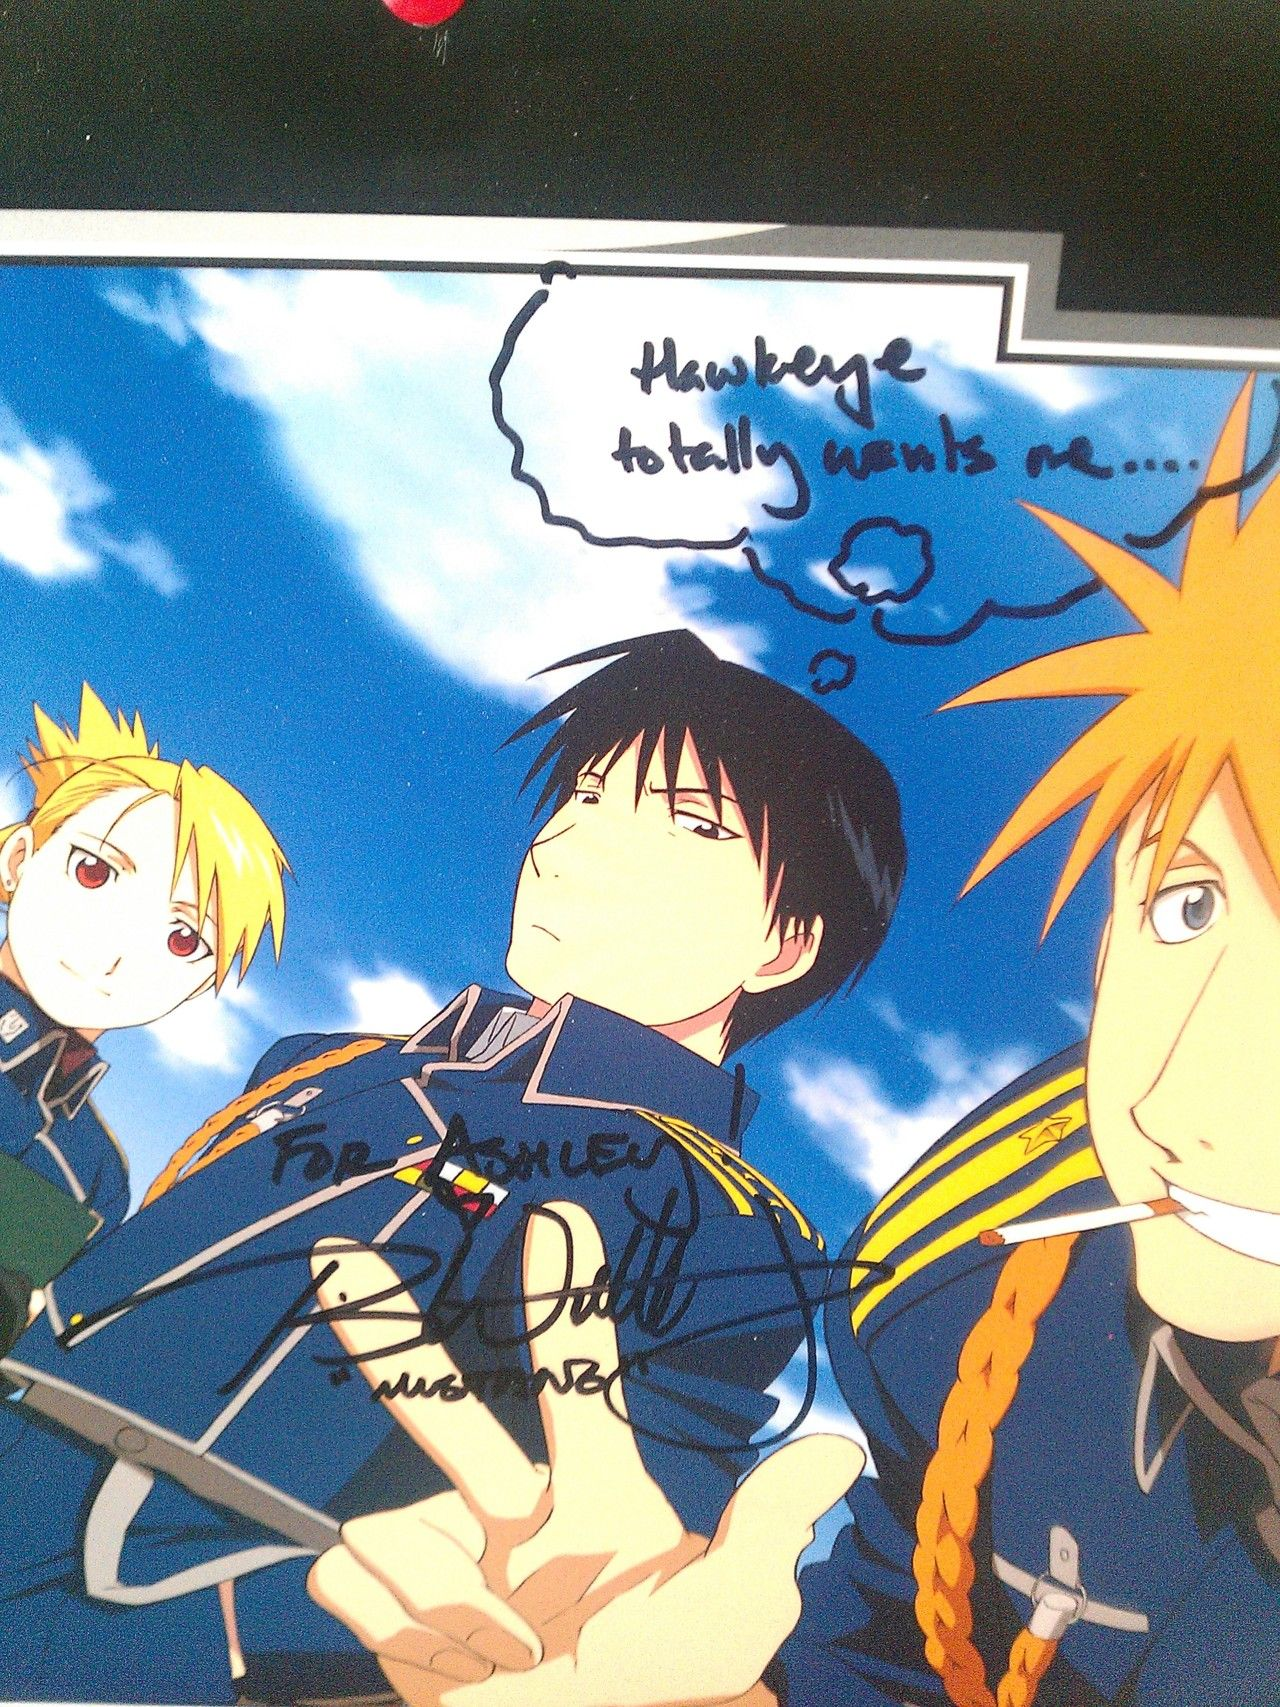 Calendar Caption Ideas : A calendar signed by travis willingham and he added the